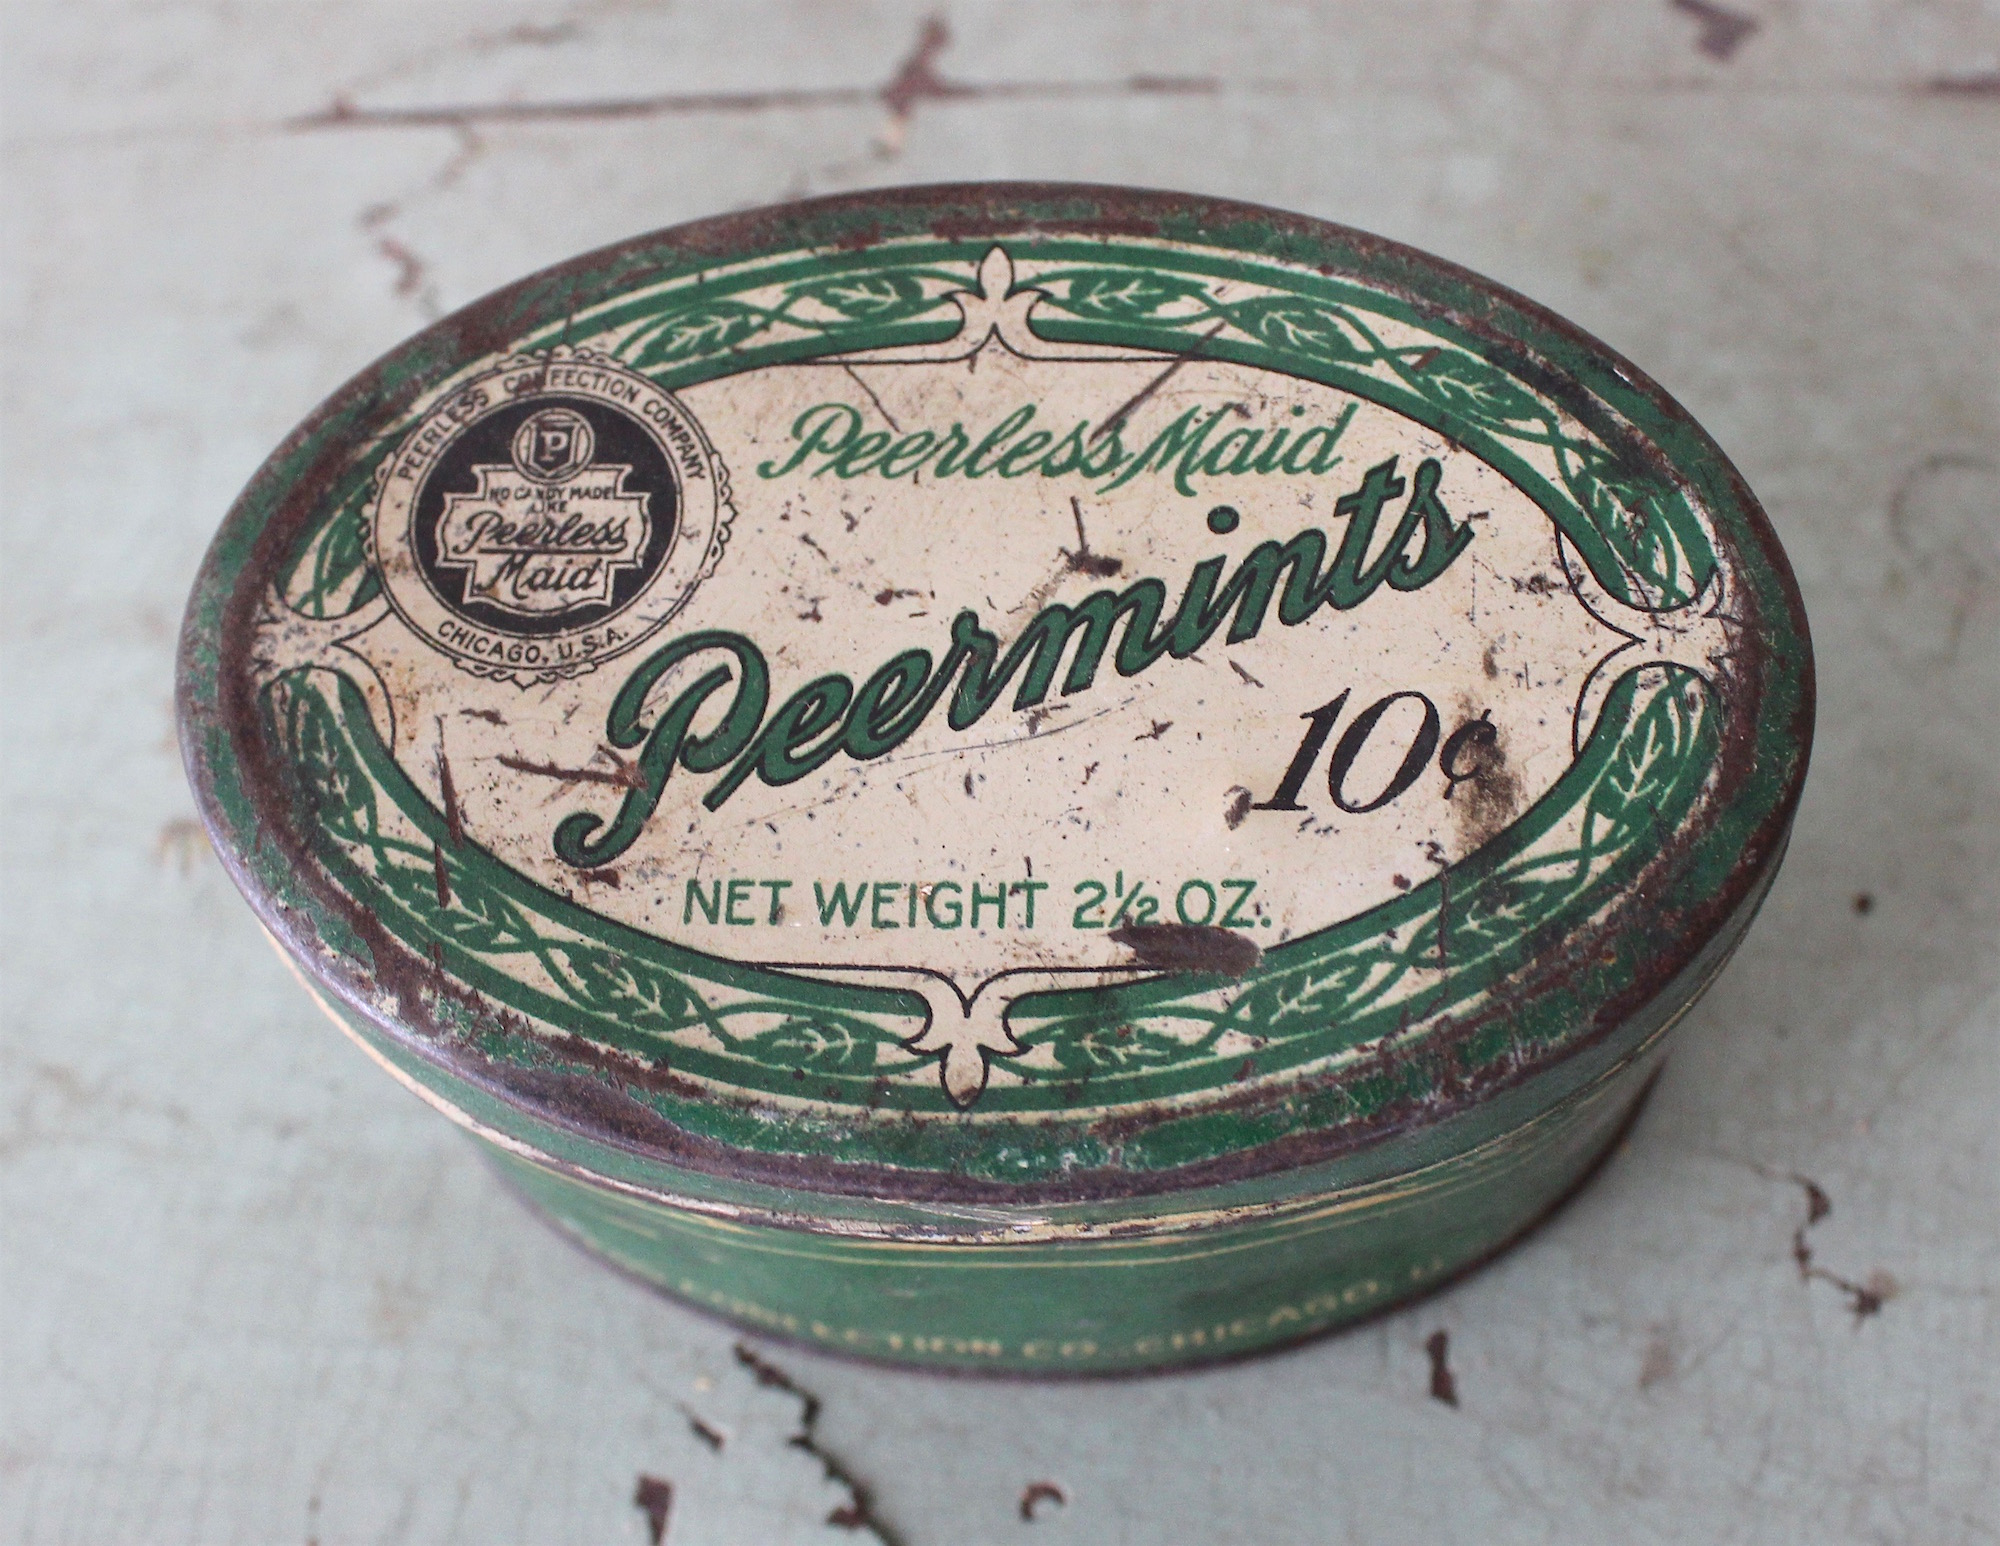 Peerless Maid Confection History - Peermints